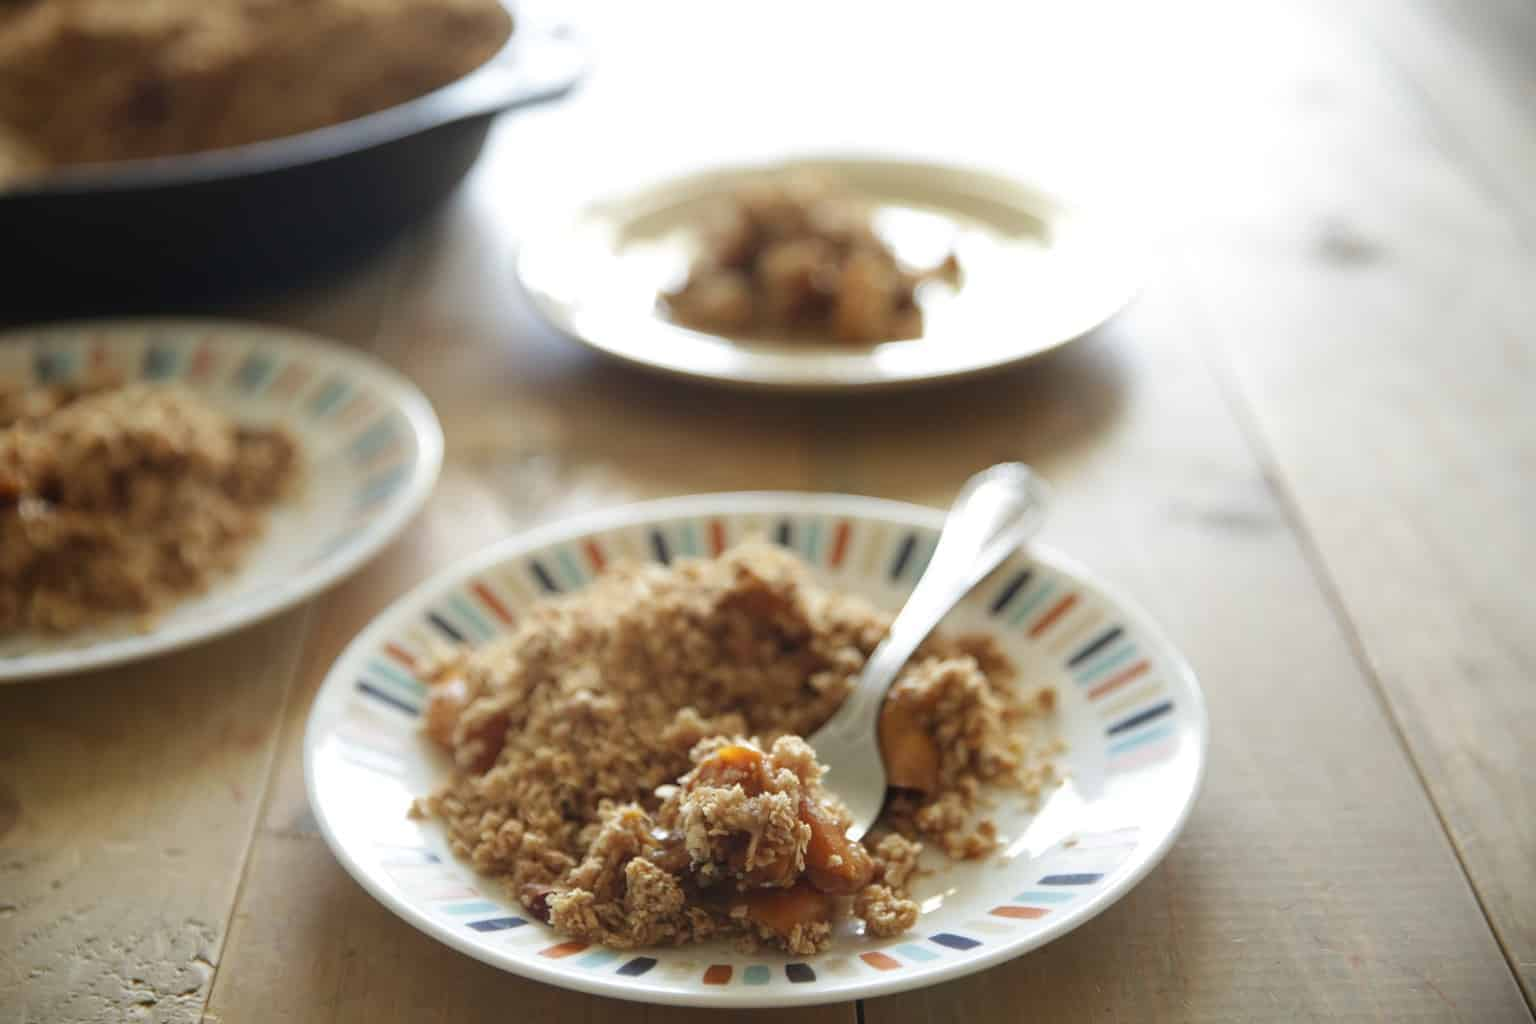 wooden table top with plates of peach crisp